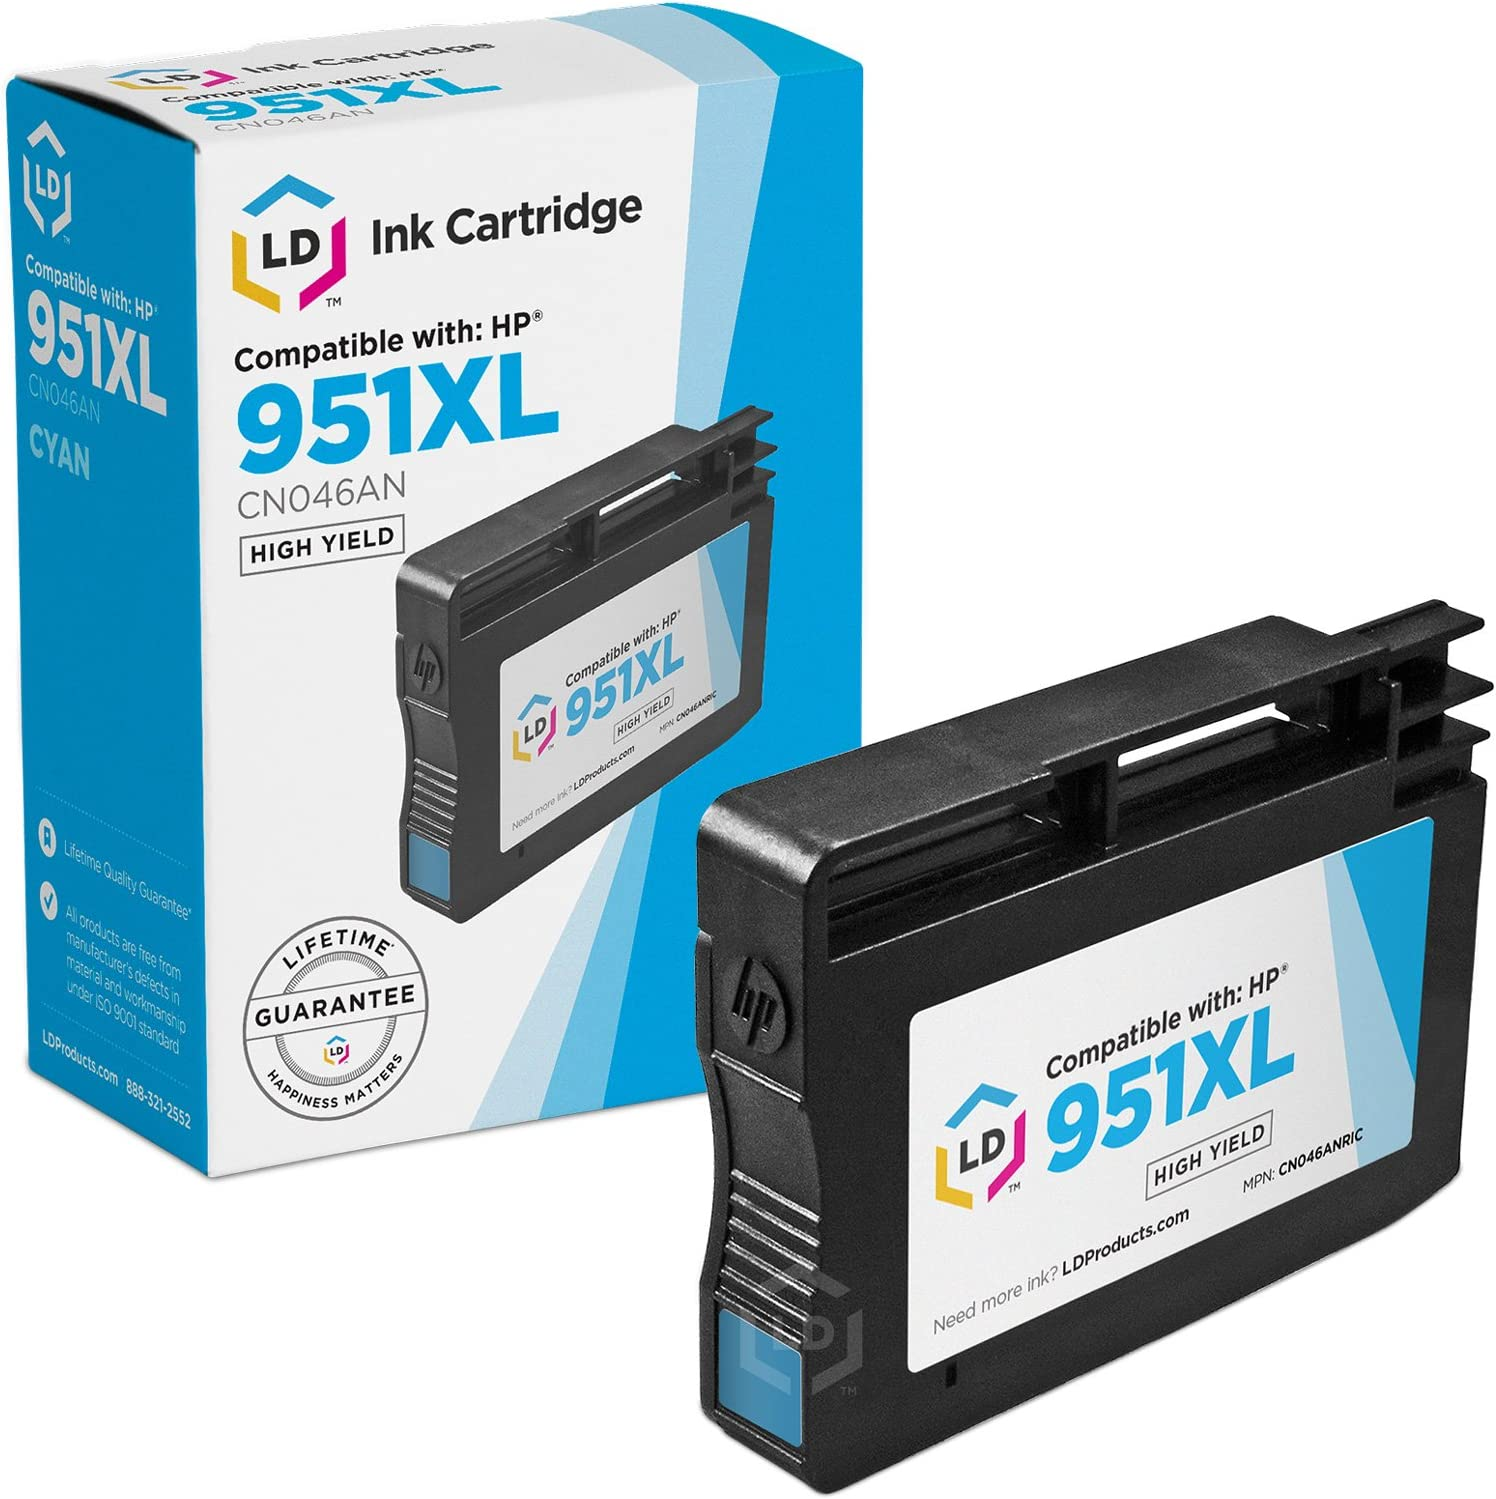 LD Remanufactured Ink Cartridge Replacement for HP 951XL CN046AN High Yield (Cyan)